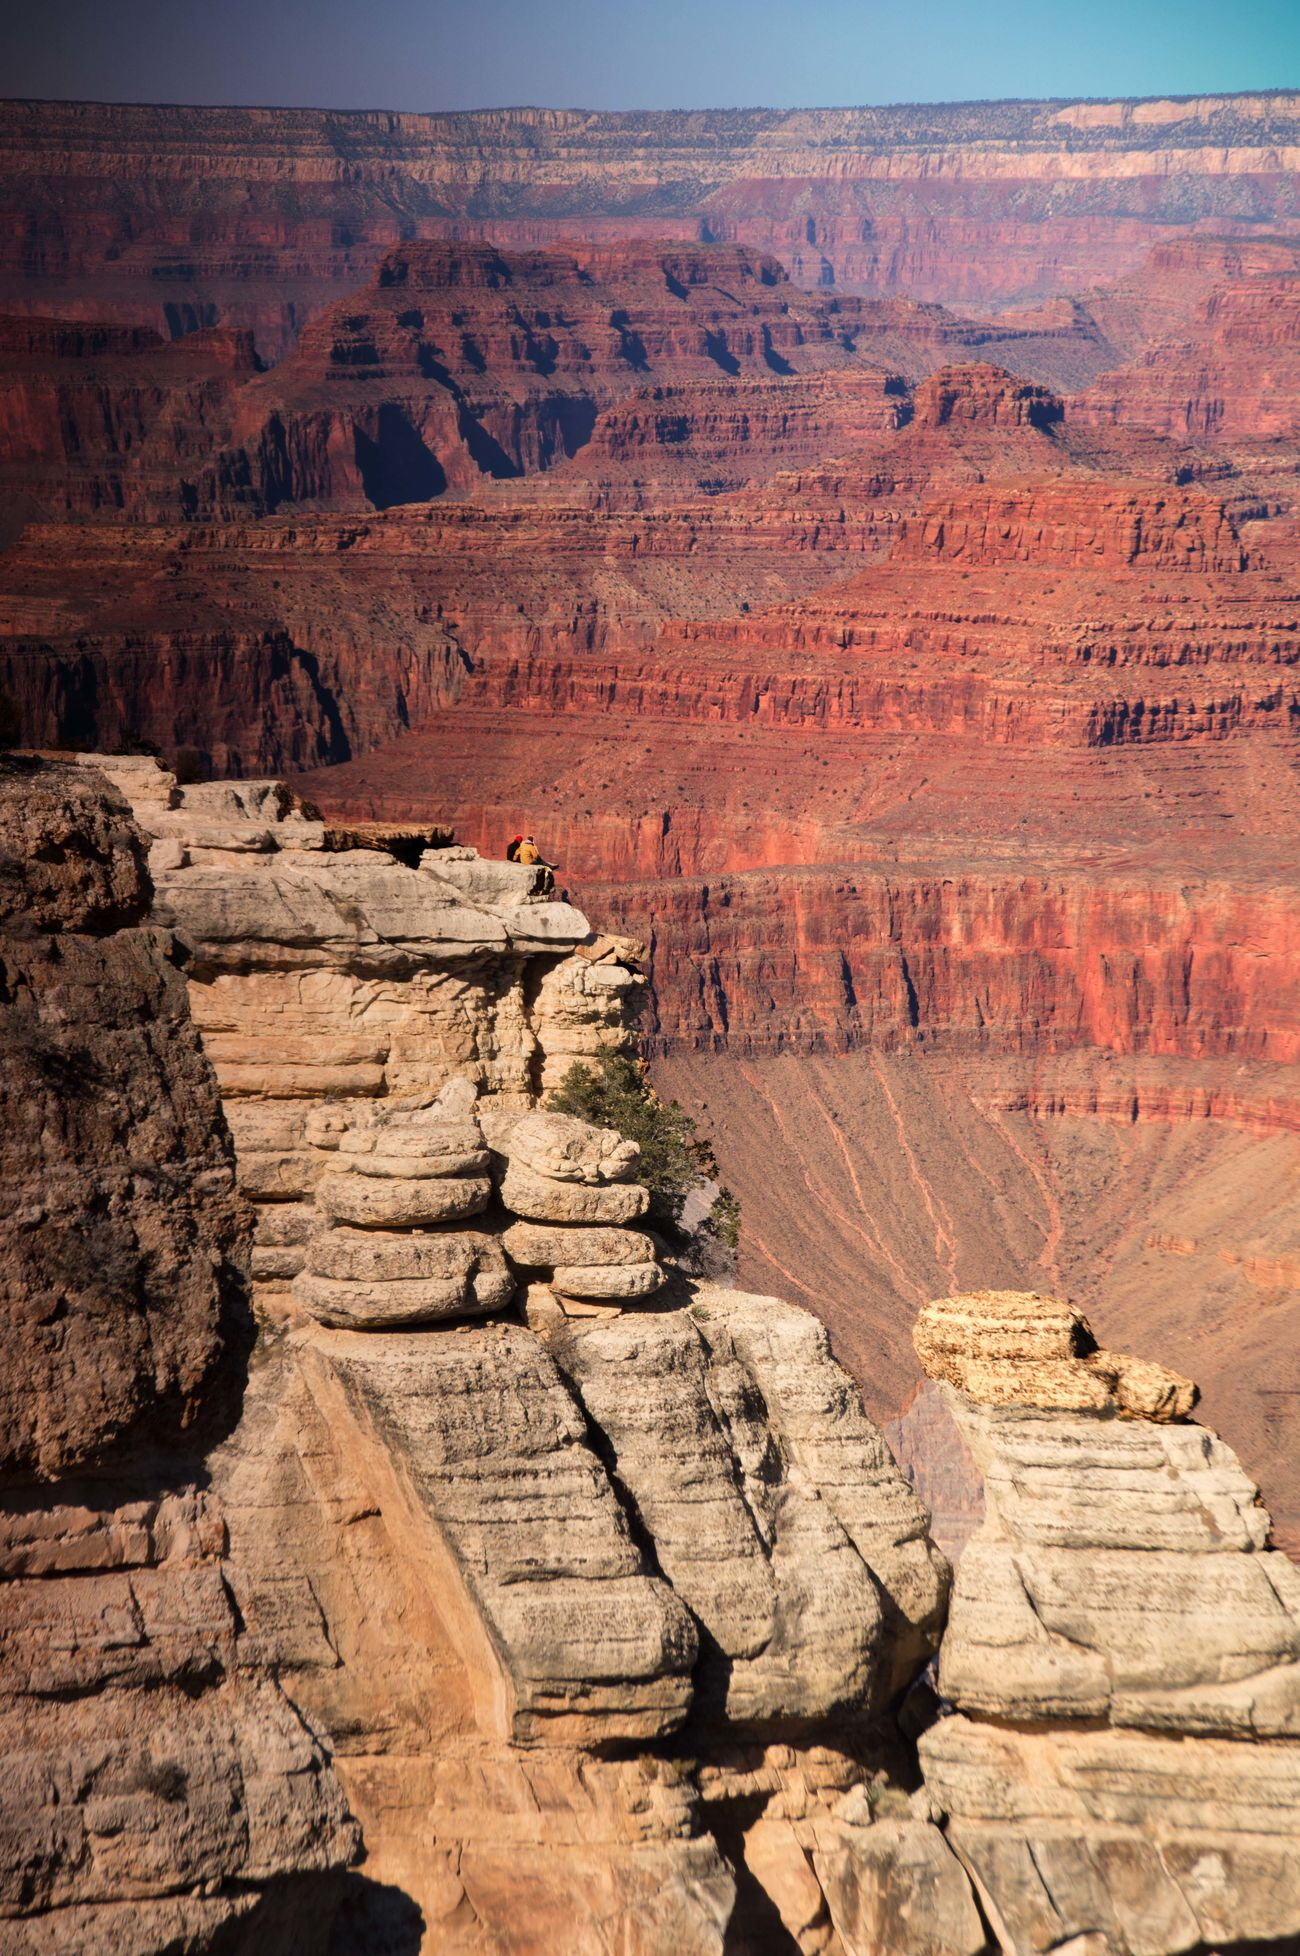 Arizona Beauty Beauty Of Decay Erosion Geography Grand Canyon Landscape Nature Outdoors Rock Sony A37 Travel Travel Destinations